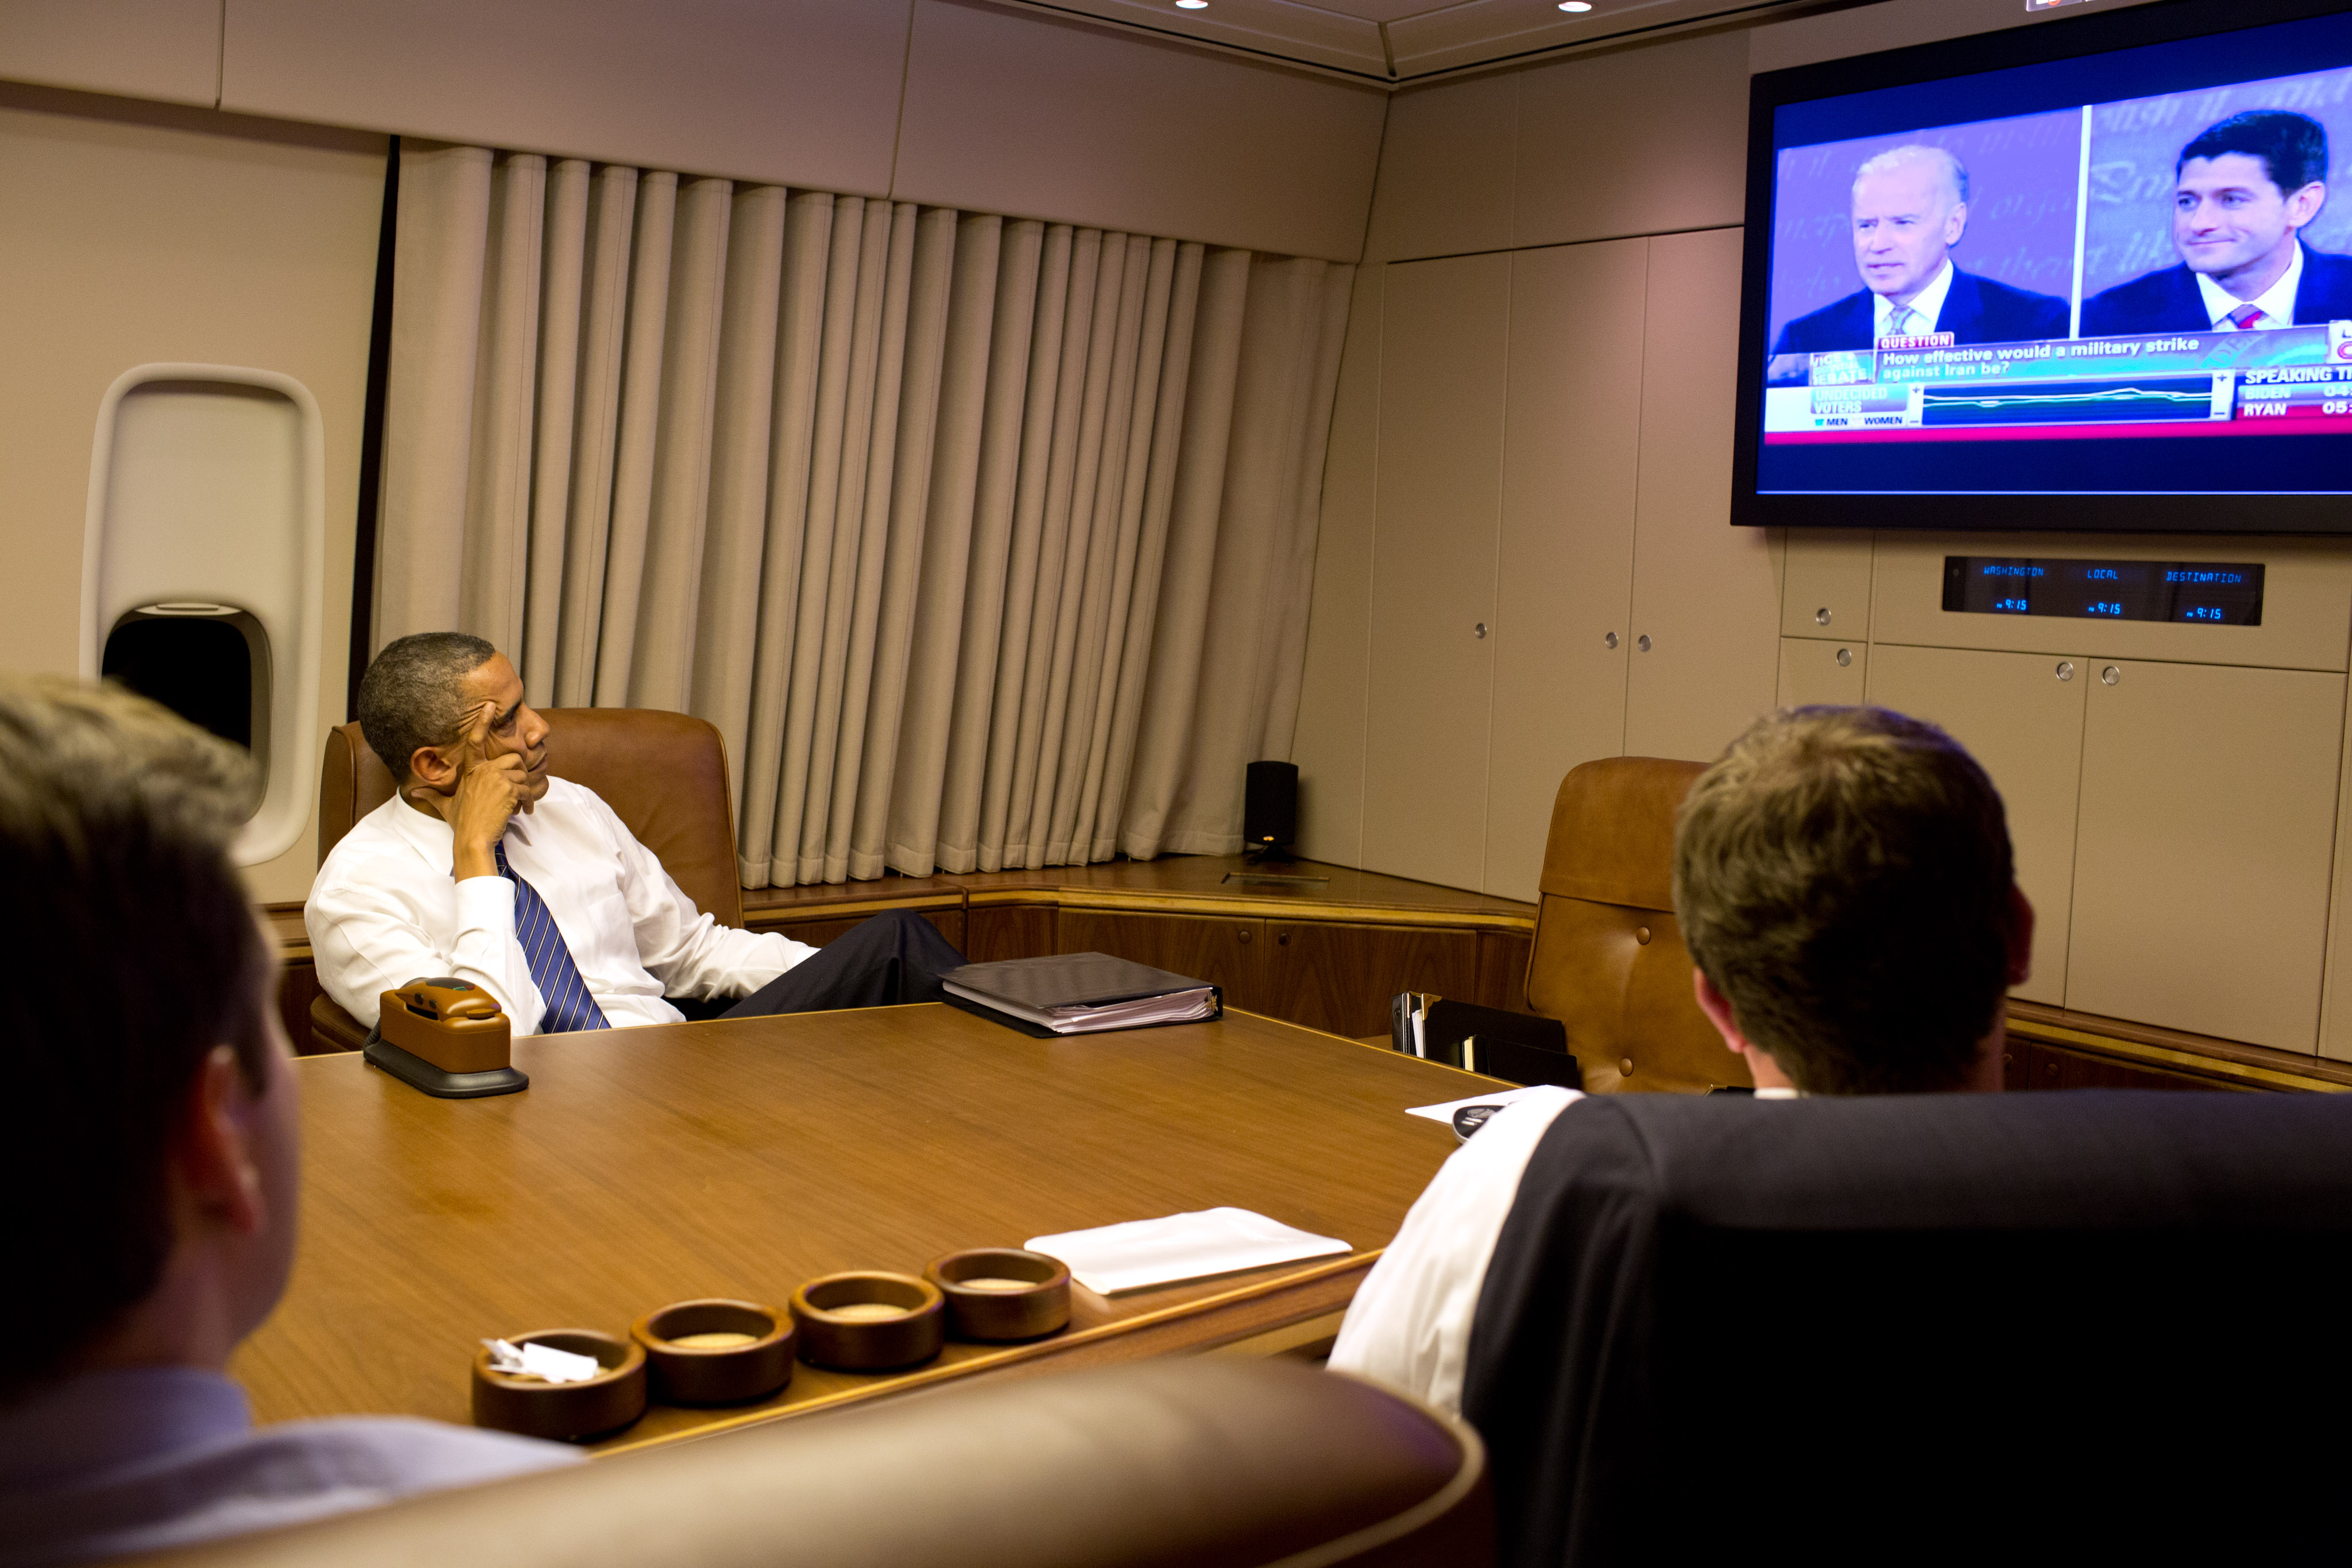 Description P101112ps-488 Air Force One Obama watches VP debate jpgObama Air Force One Interior